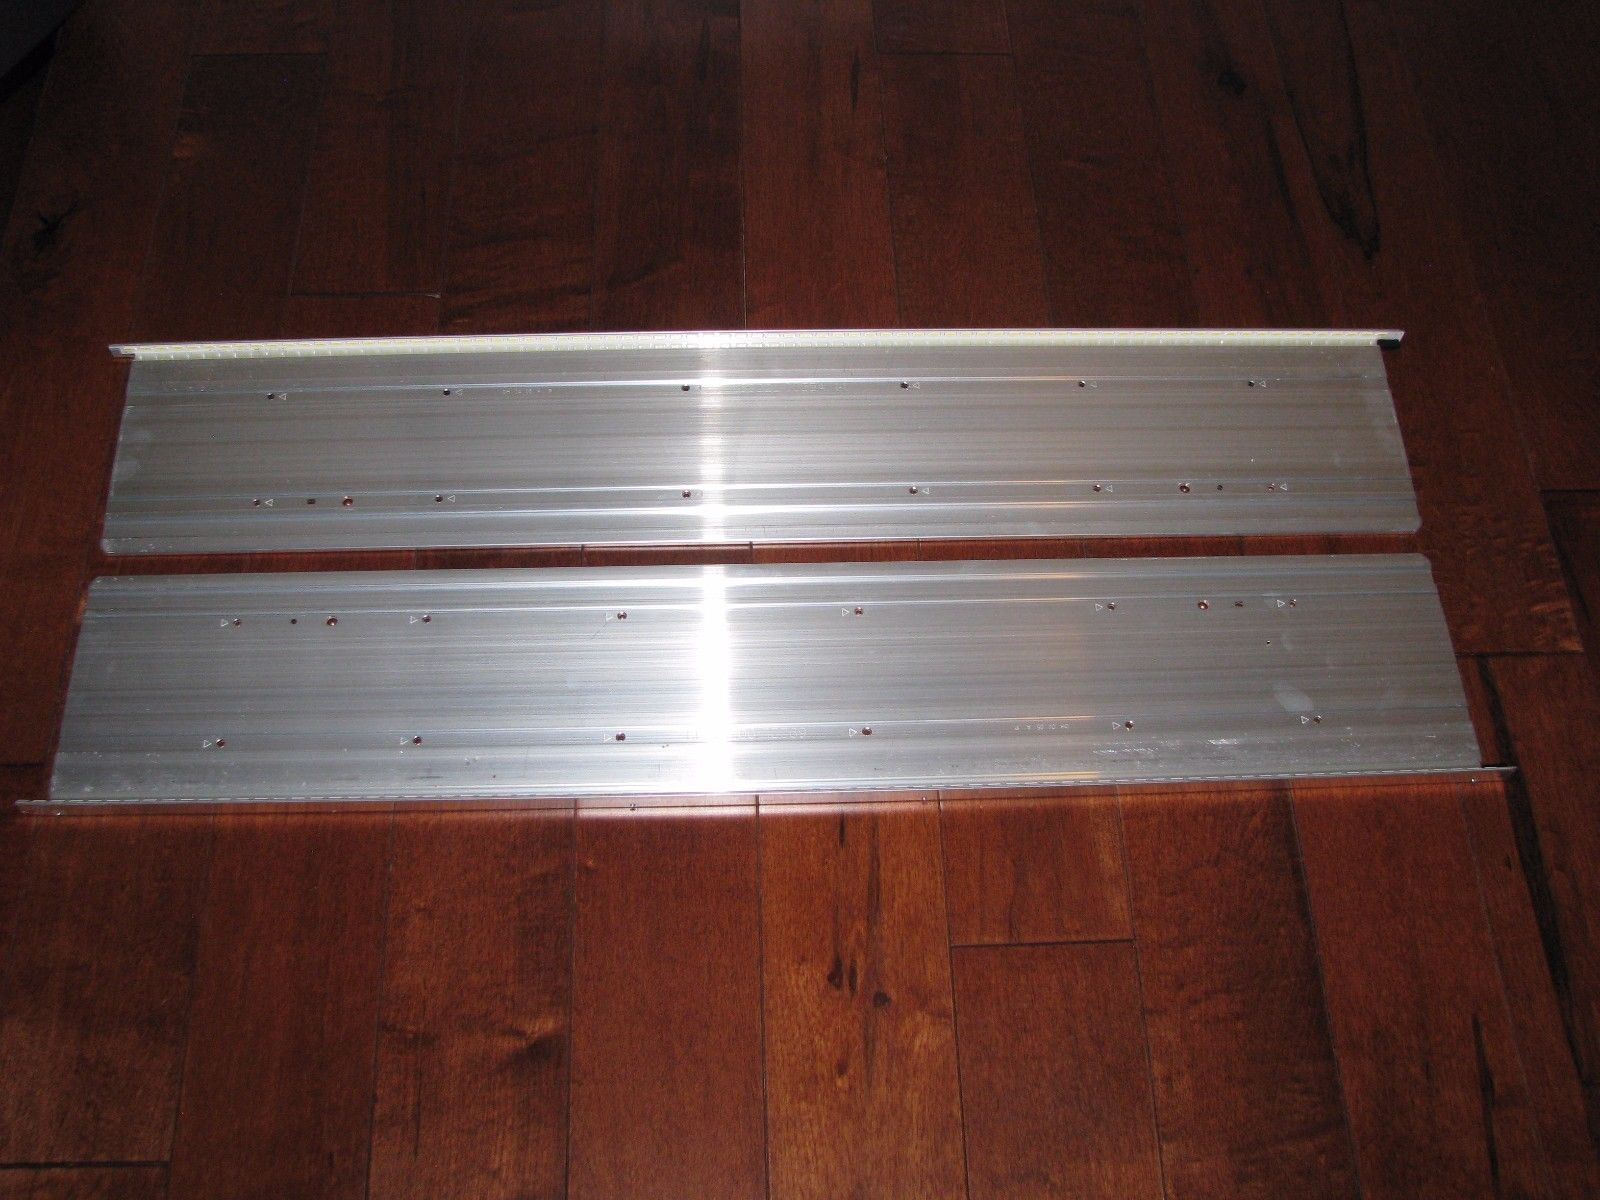 LG 60LM7200 LED Backlight Strip Set (left and right) 6922L 0035A